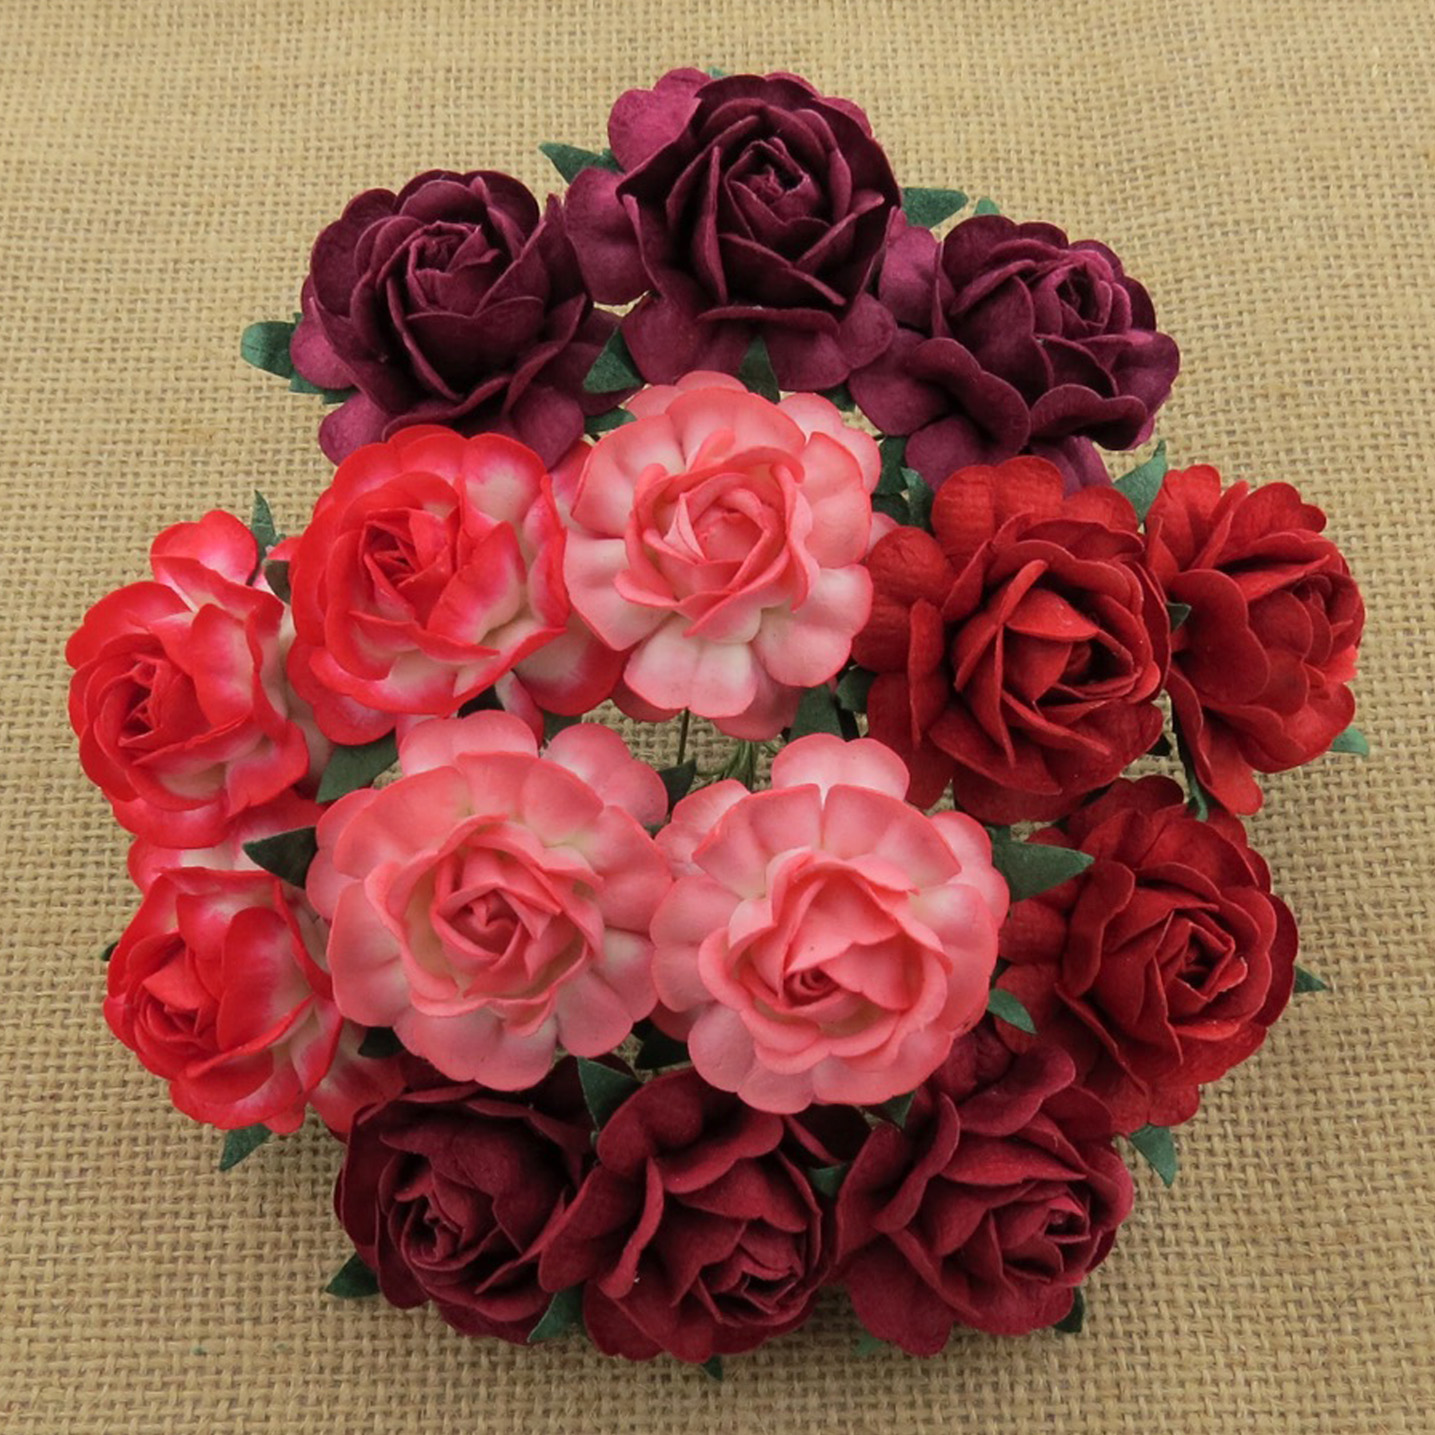 50 MIXED RED MULBERRY PAPER TEA ROSES 40mm - 5 COLOR